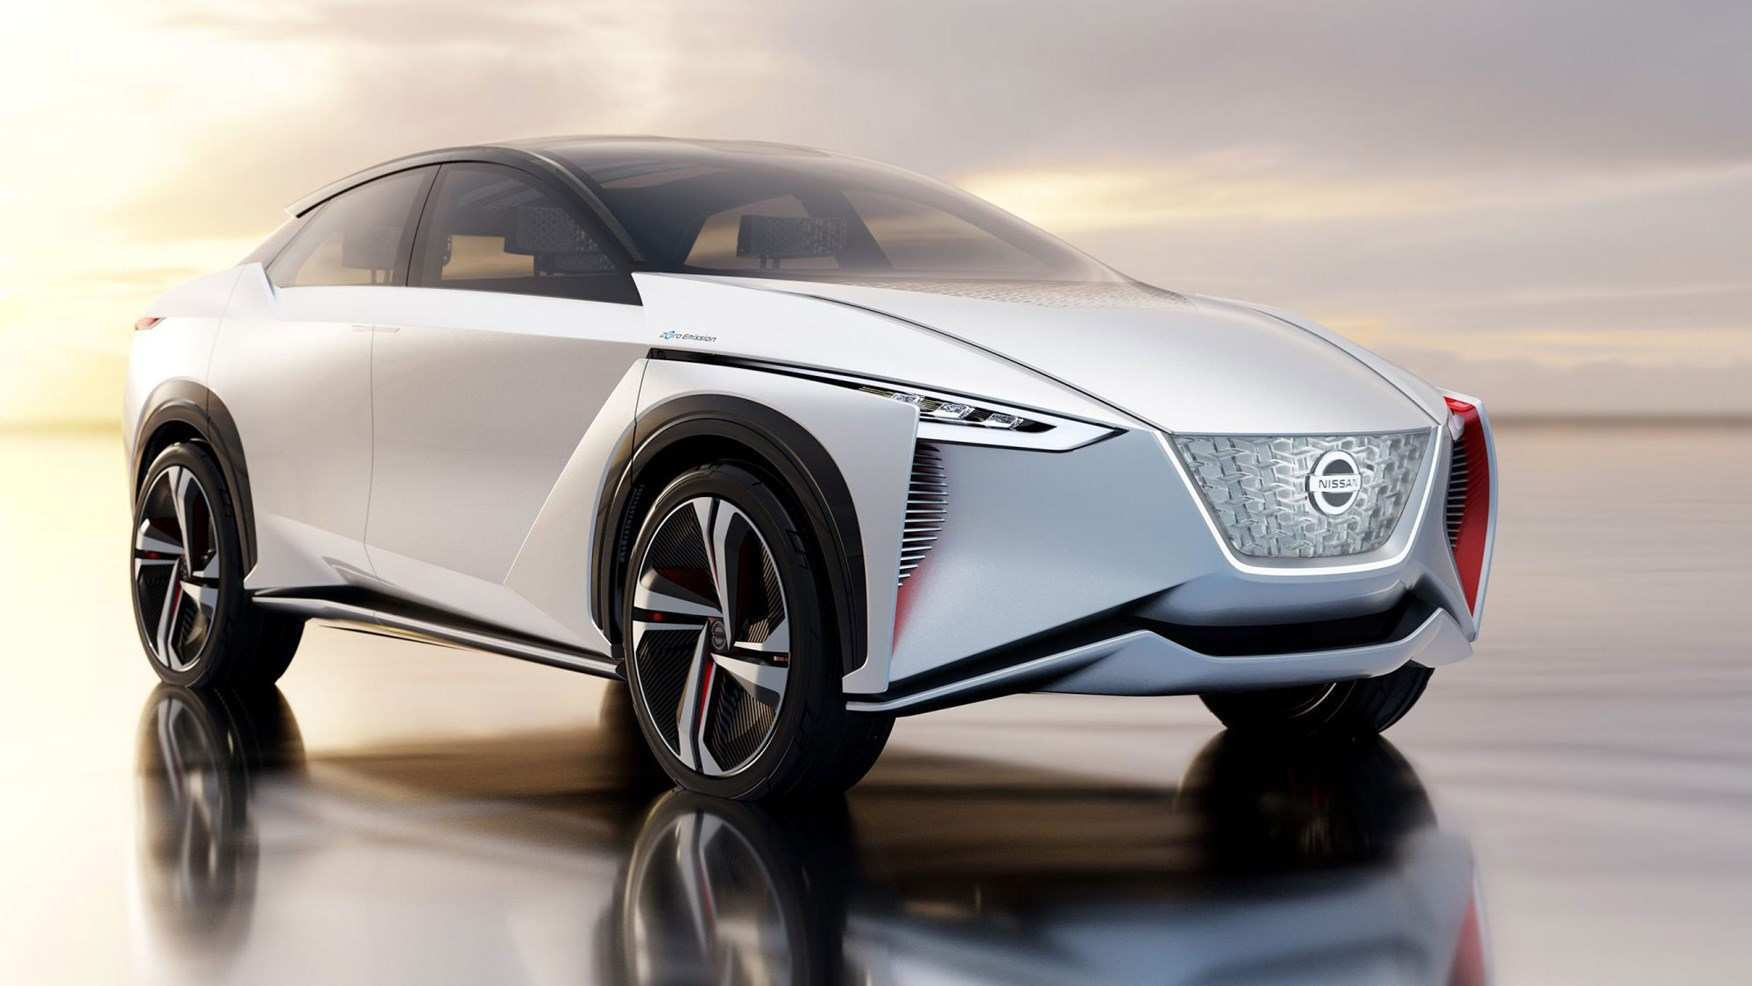 40 A Nissan Imx 2020 Price Design And Review